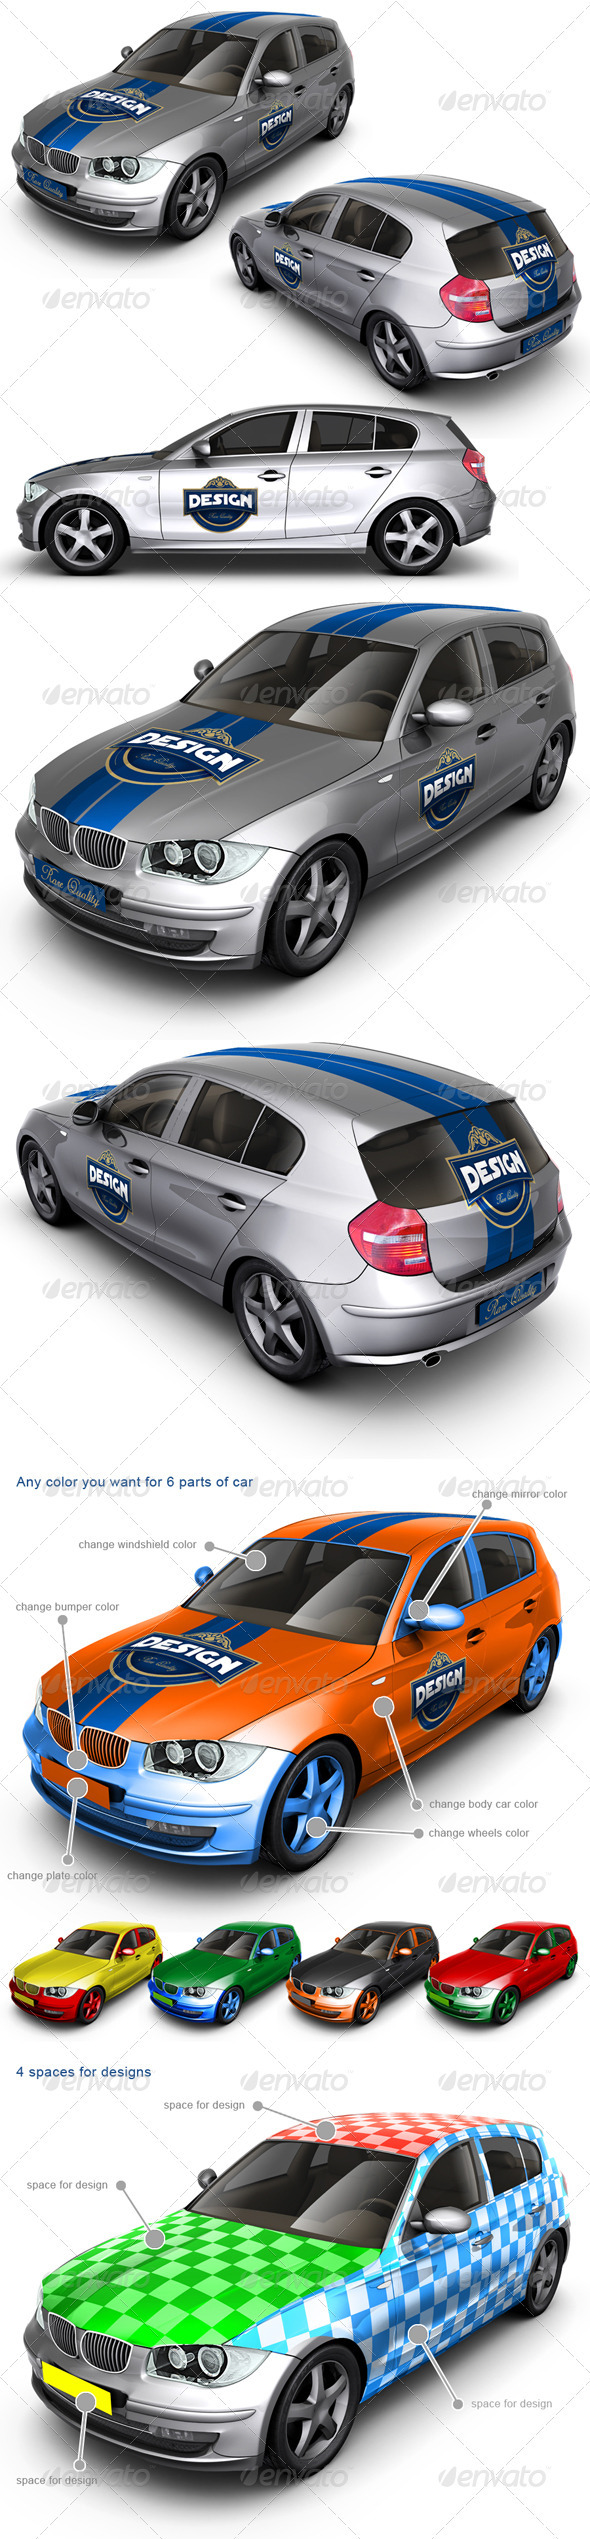 Executive/Family Car Mock Up - Vehicle Wraps Print